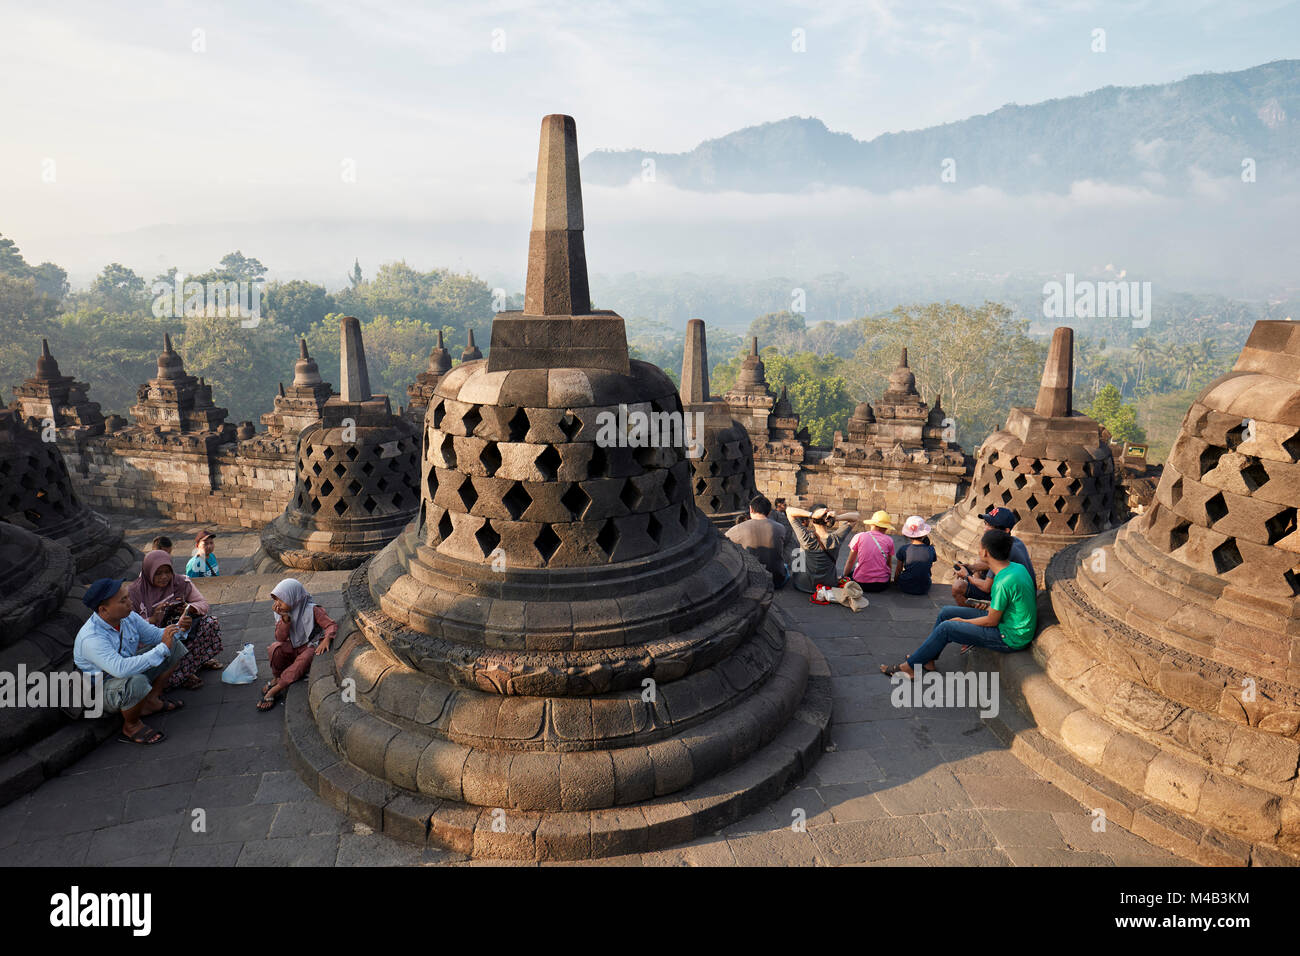 Tourists in Borobudur Buddhist Temple. Magelang Regency, Java, Indonesia. - Stock Image